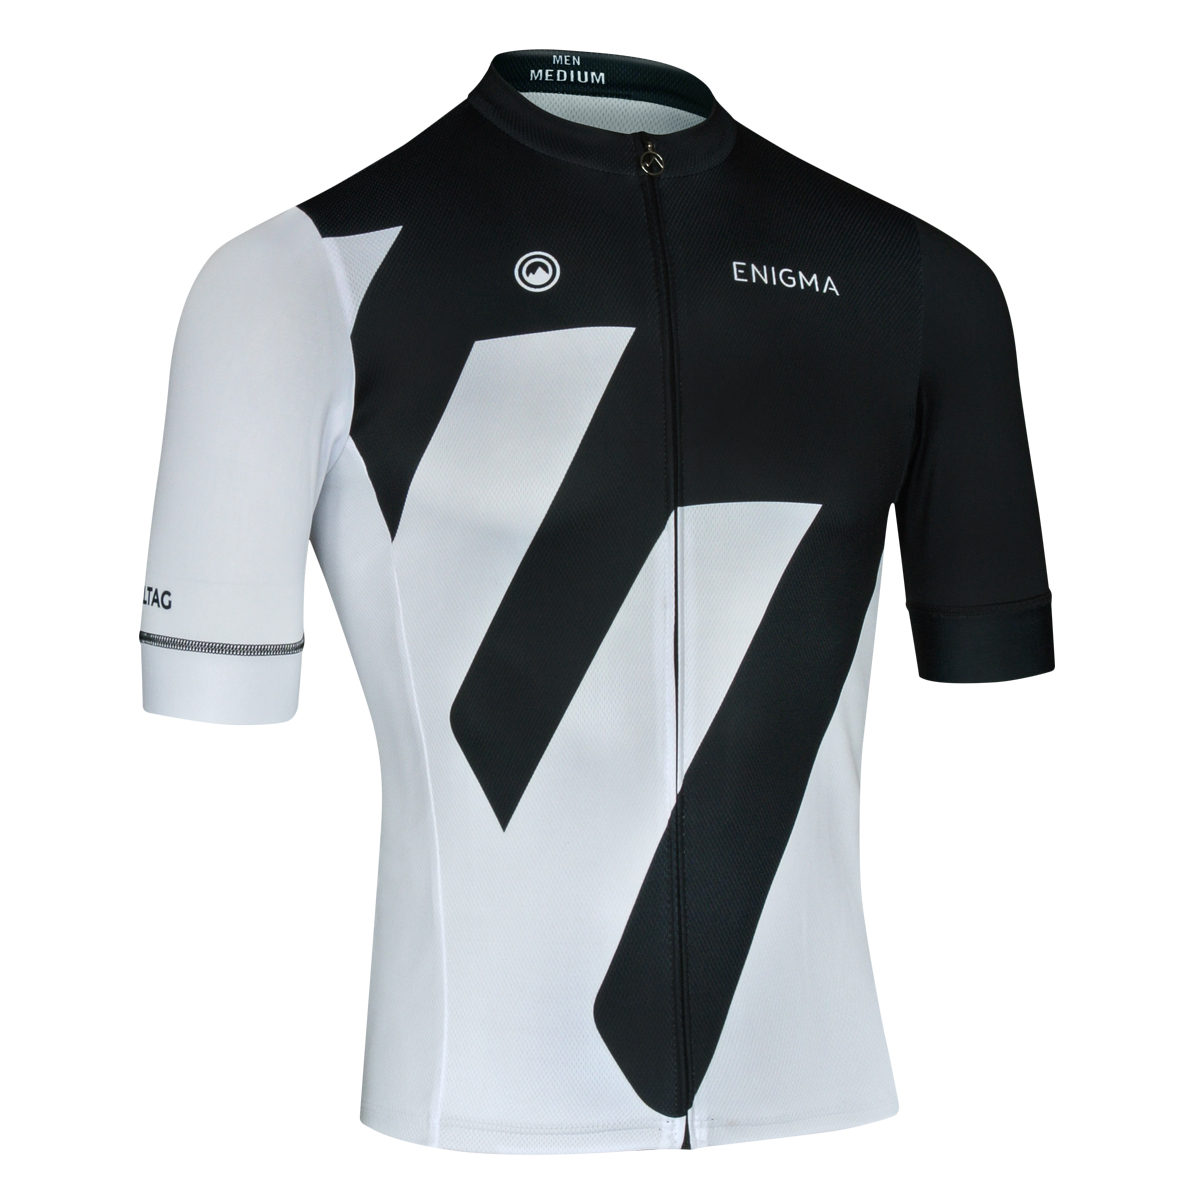 Enigma Jersey Front